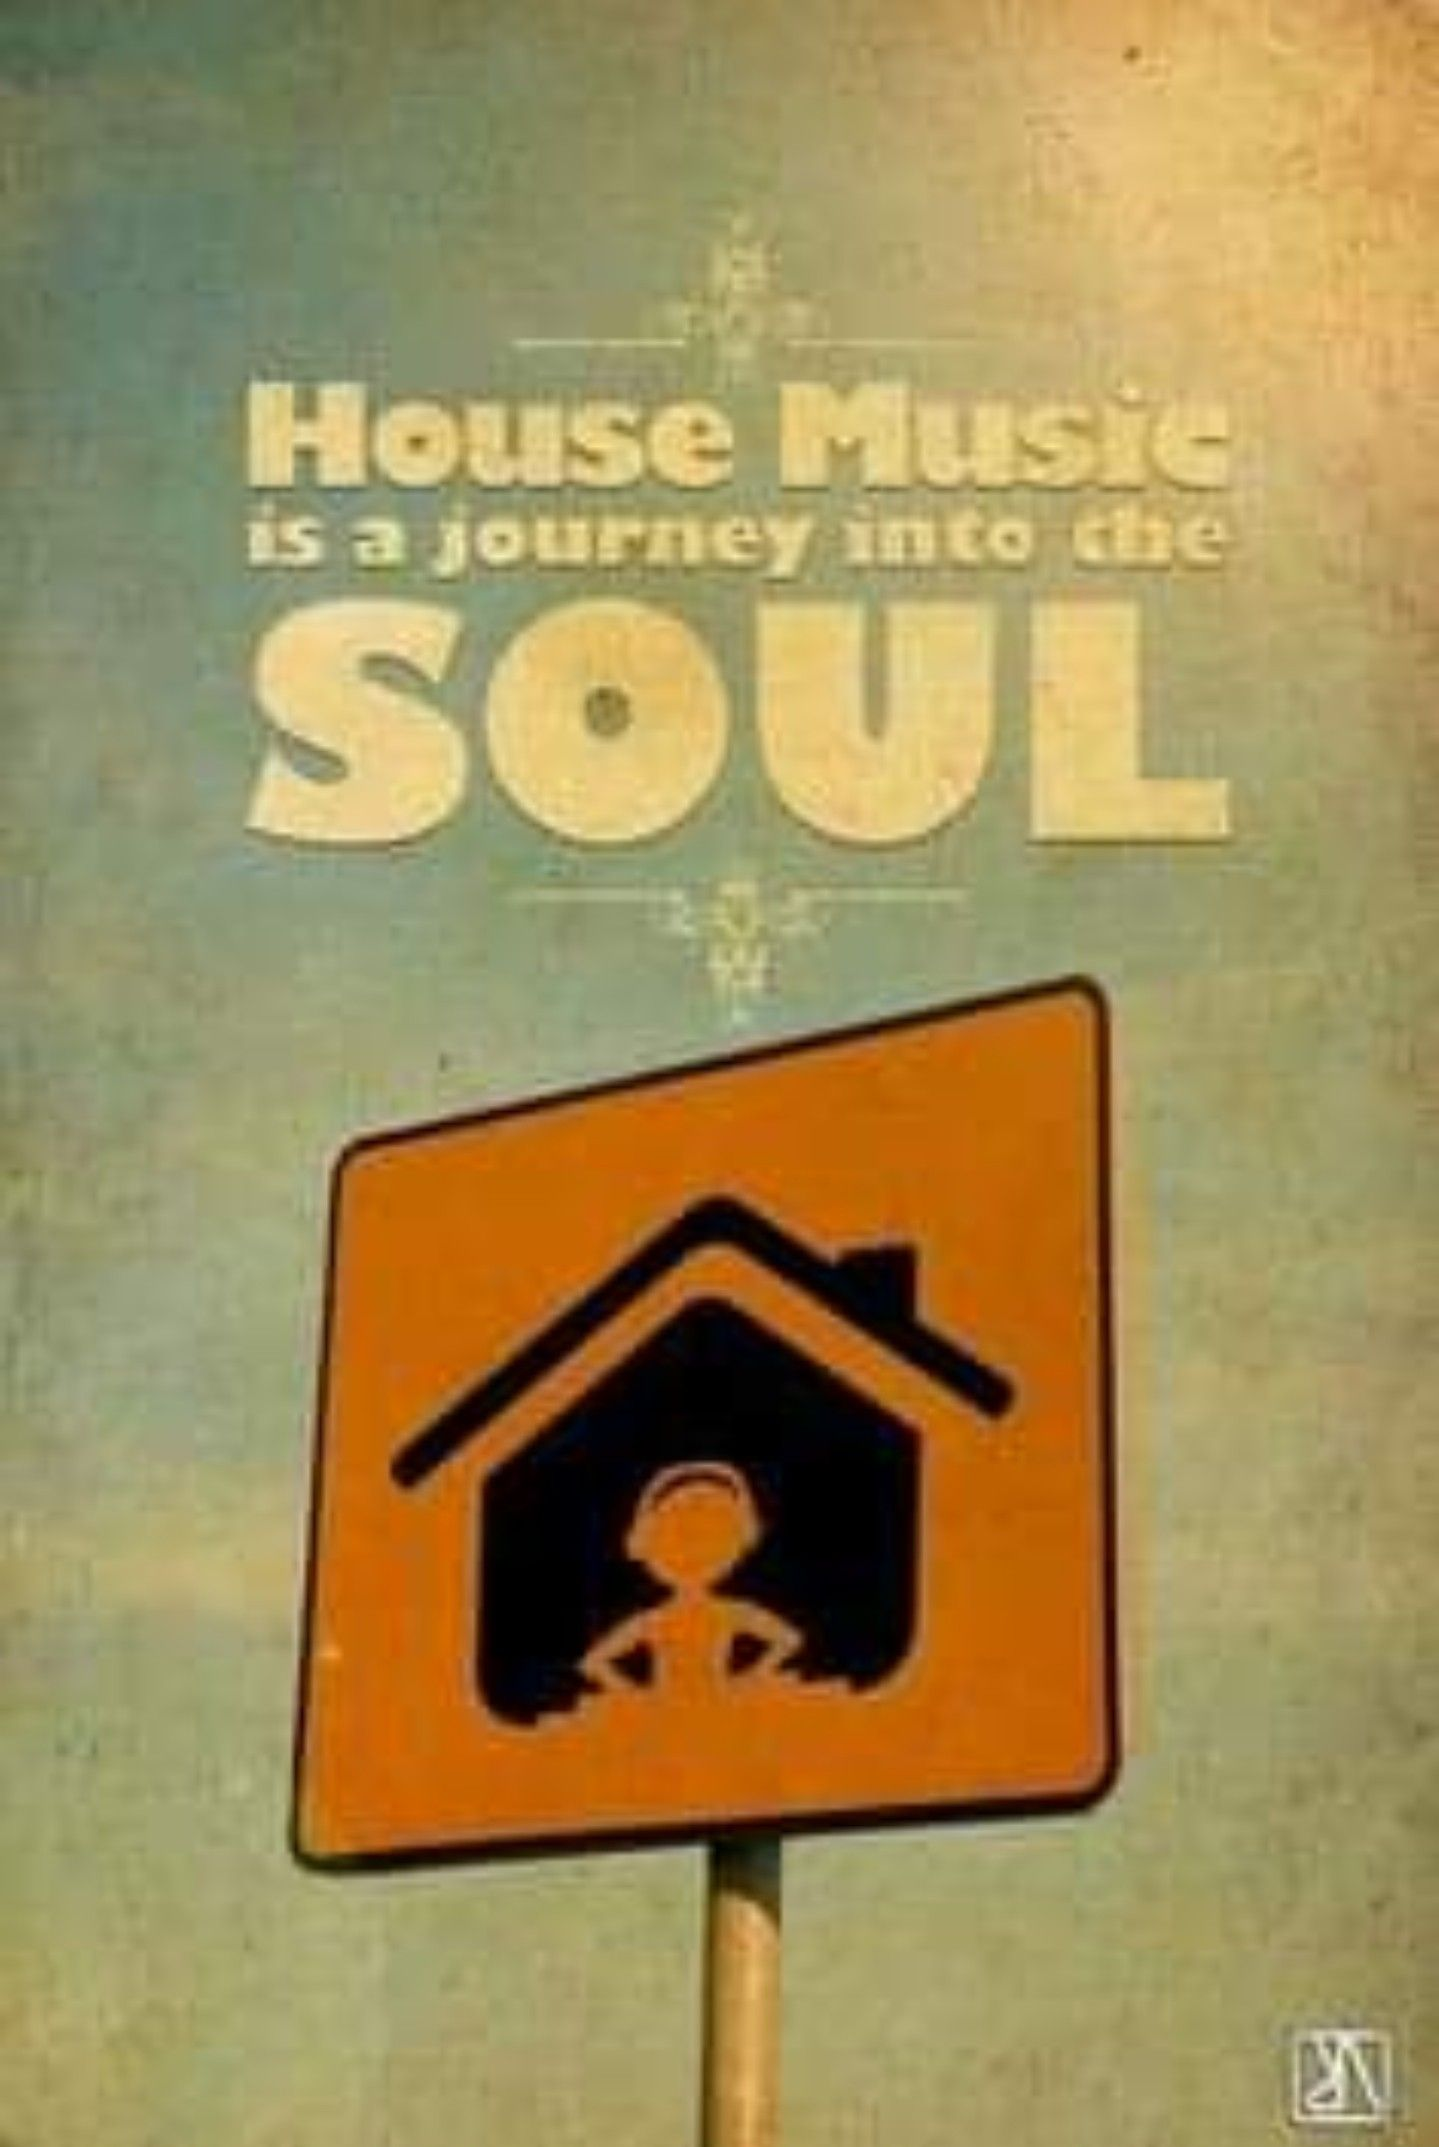 Pin by ramagiggle on Inspirational/Sarcastic  House music, House